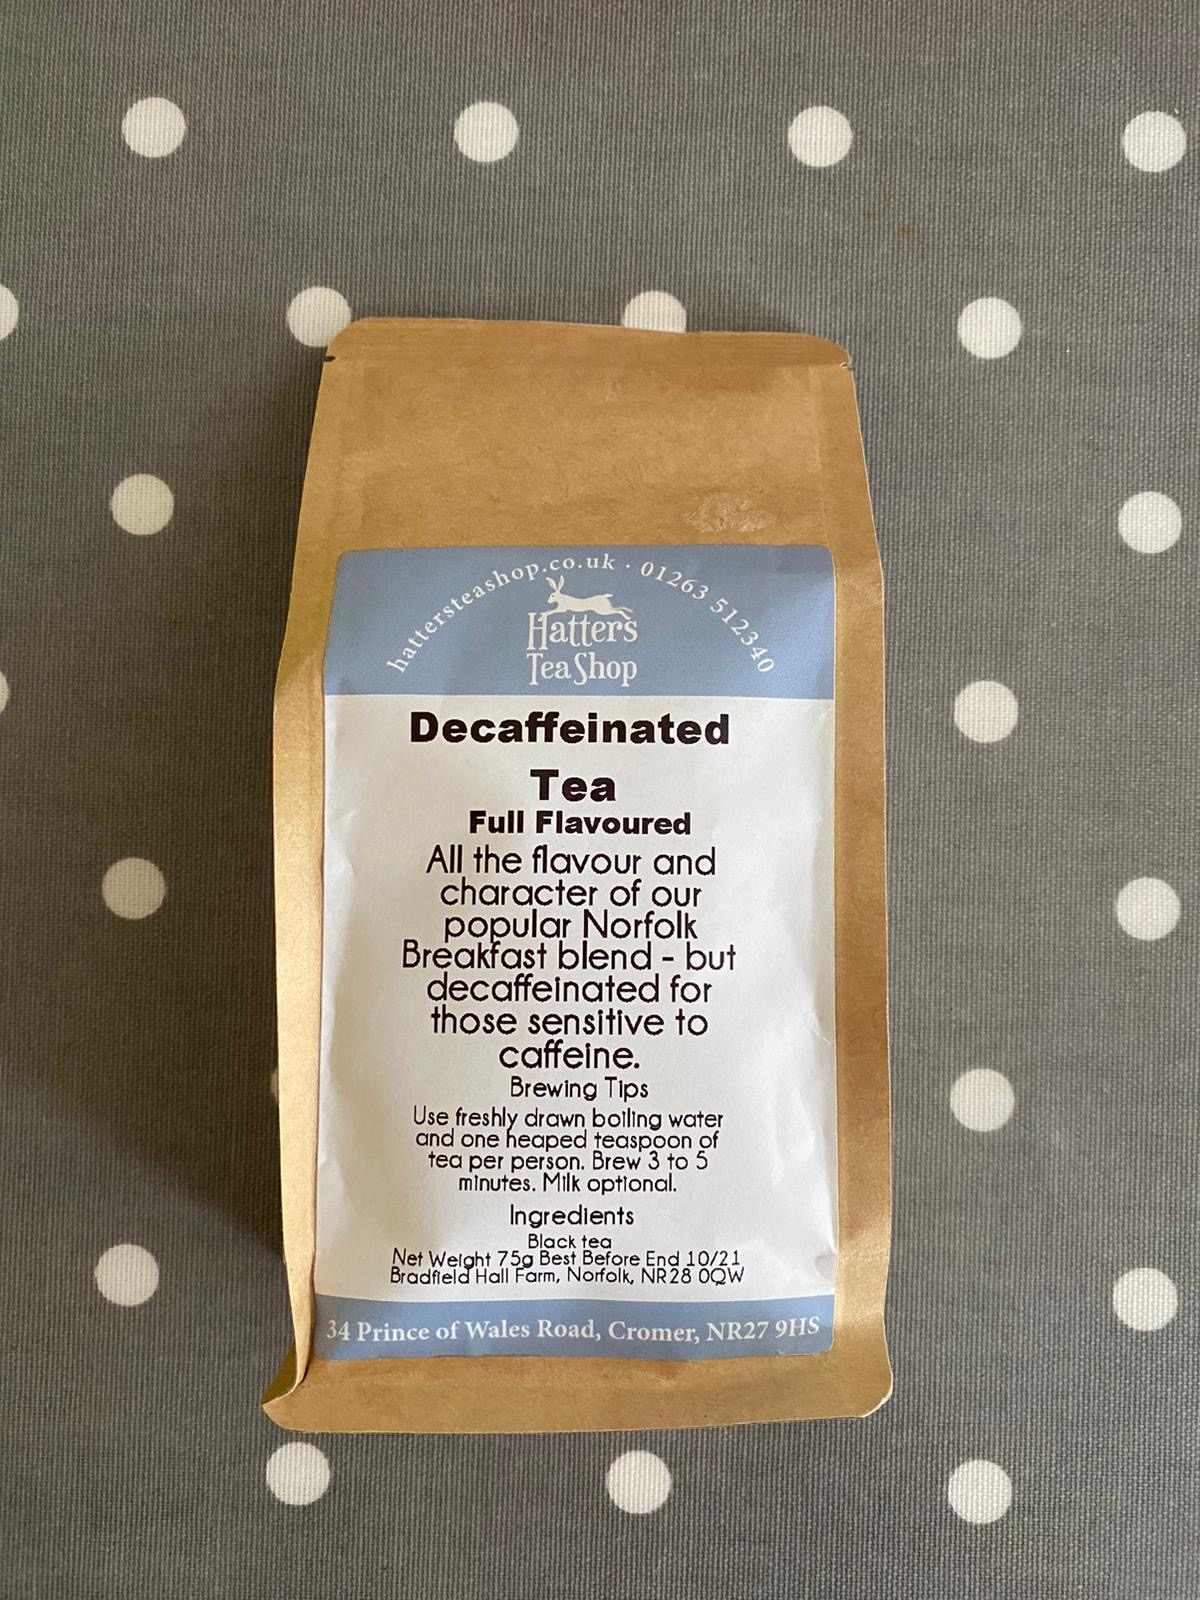 Hatters Loose Leaf Tea - Decaffeinated Tea